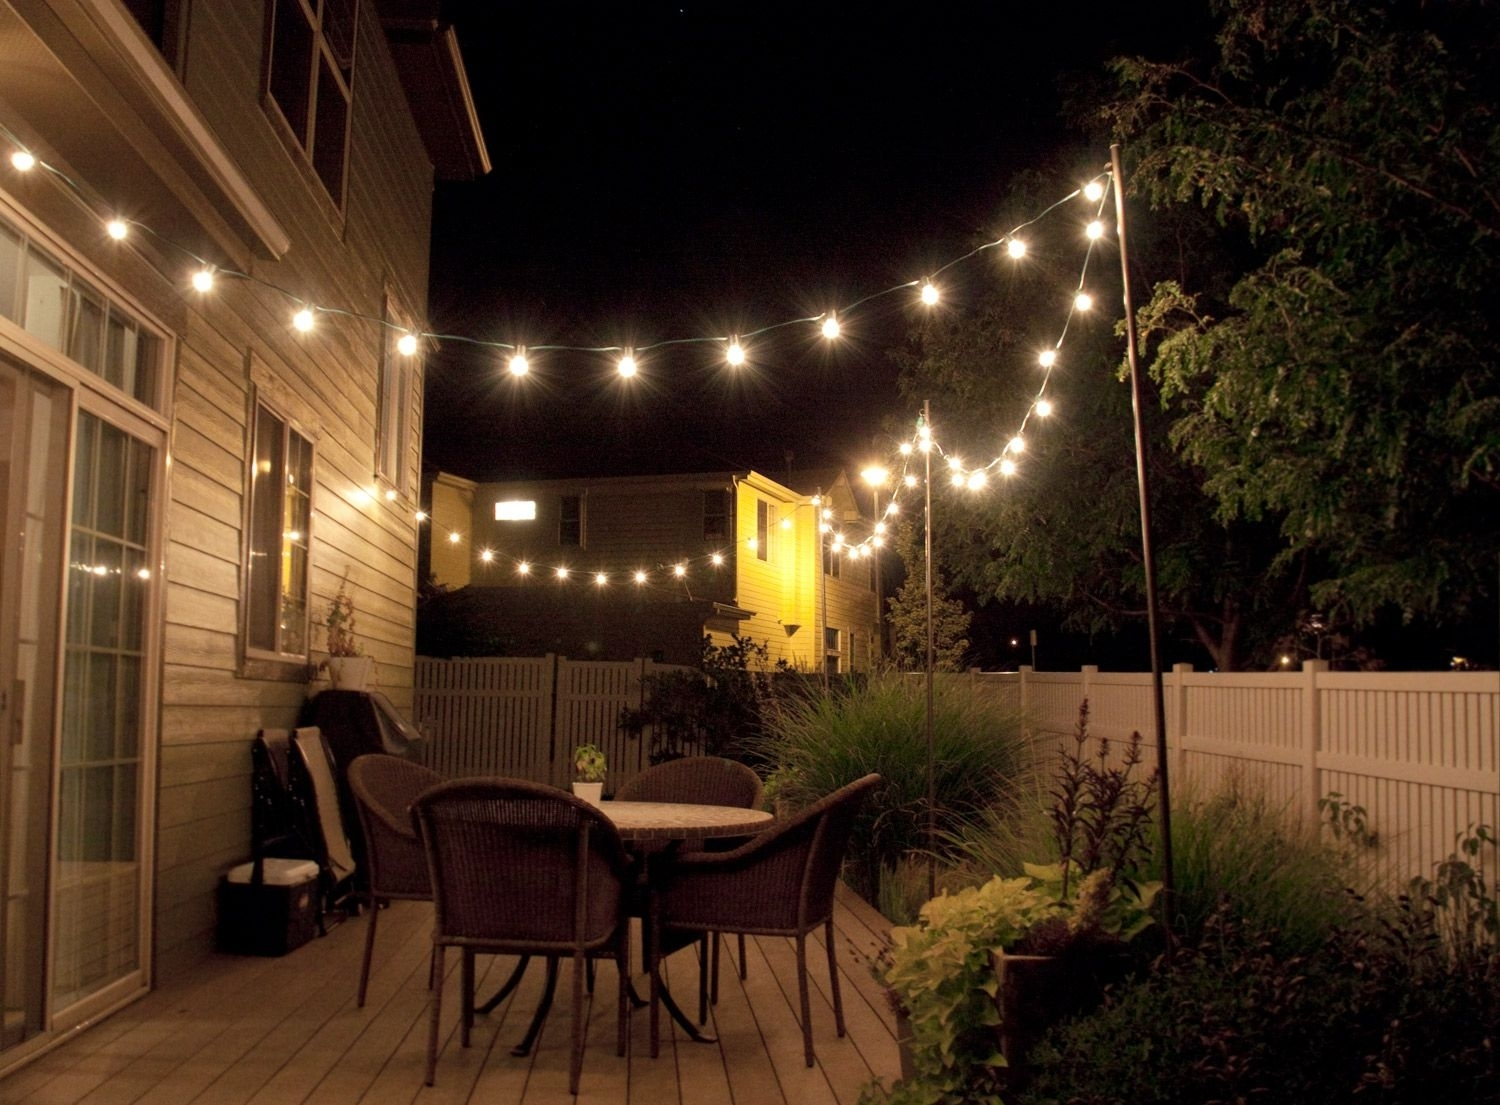 How To Make Inexpensive Poles To Hang String Lights On – Café Style With Outdoor Hanging Garden Lights (View 2 of 15)